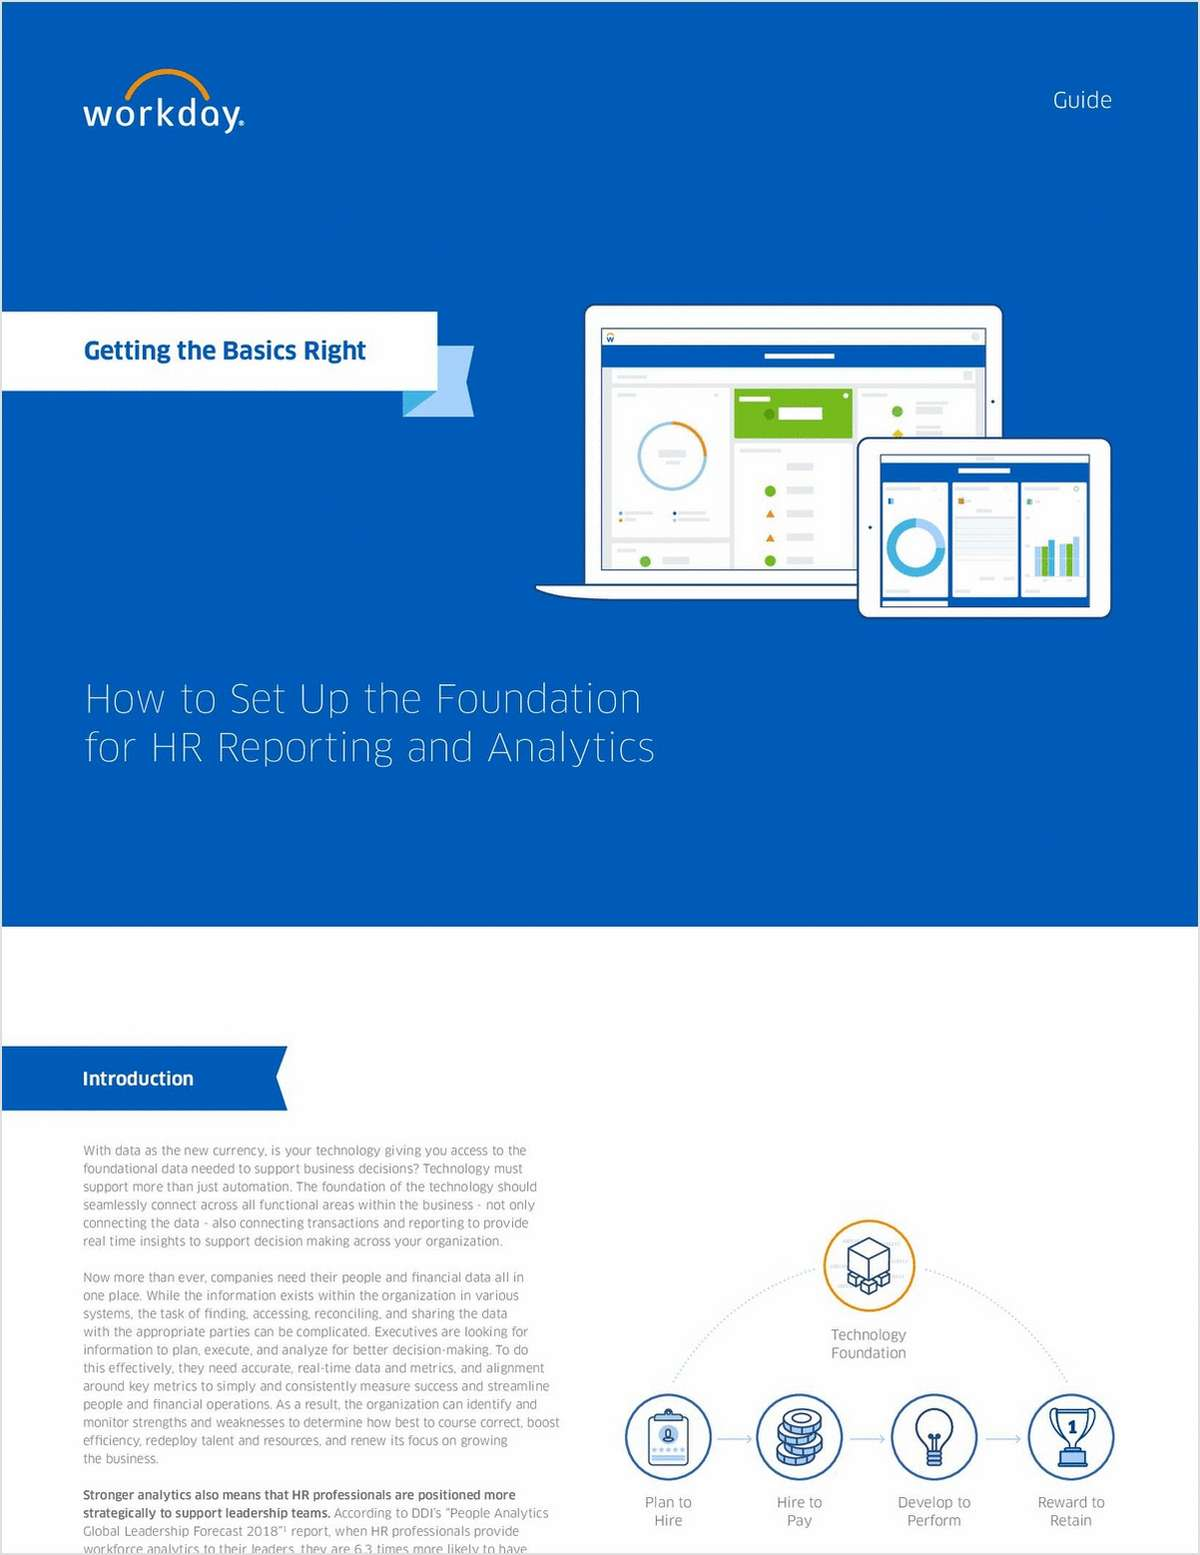 Getting the Basics Right - How to Set Up the Foundation for HR Reporting and Analytics